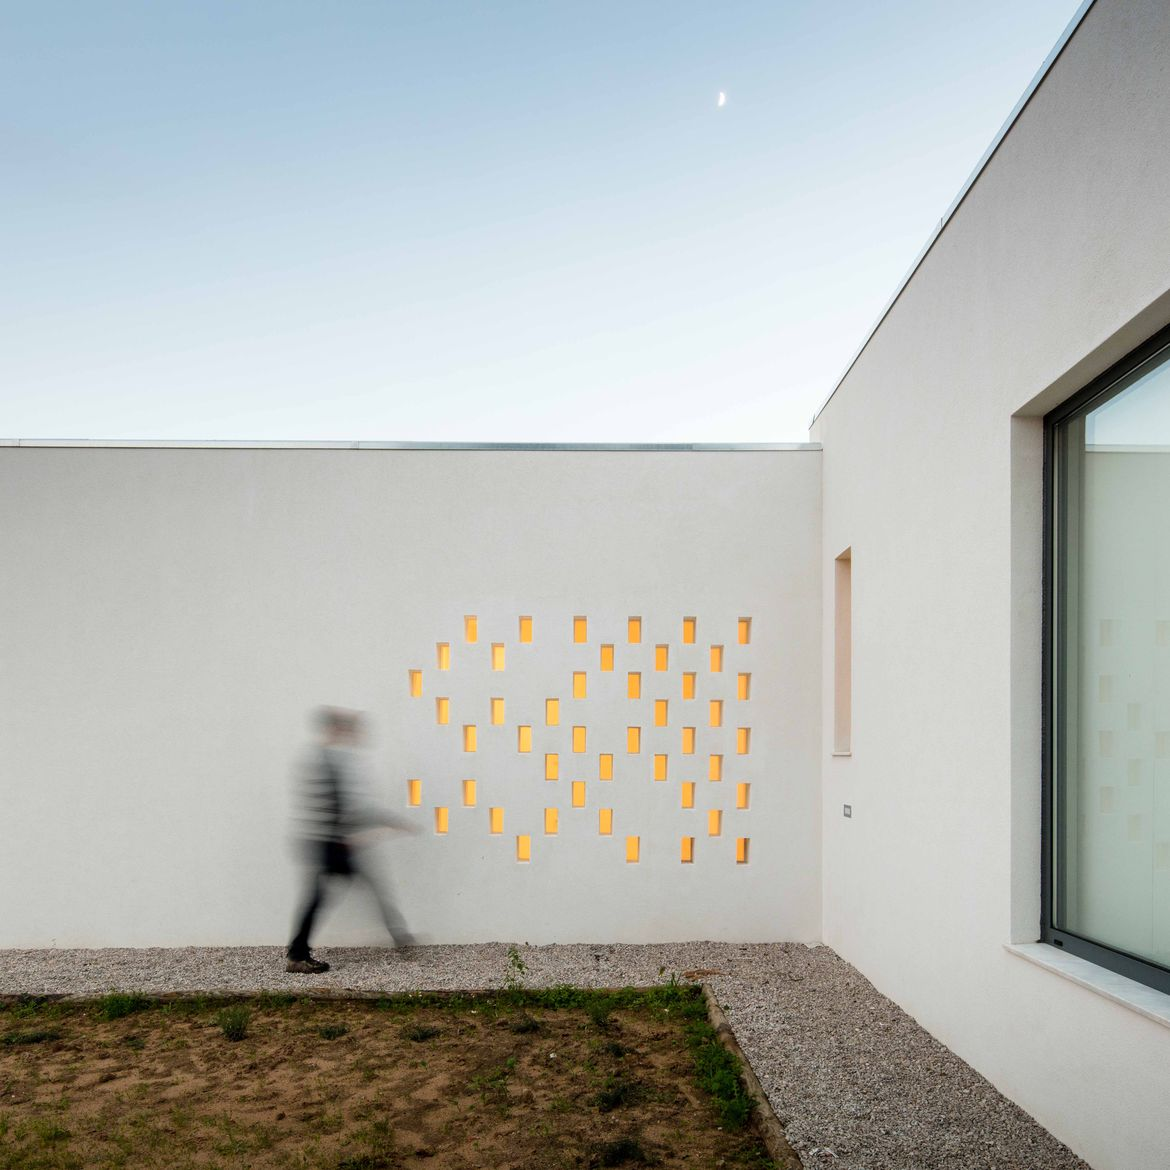 Scattershot openings in a single-story home in Portugal